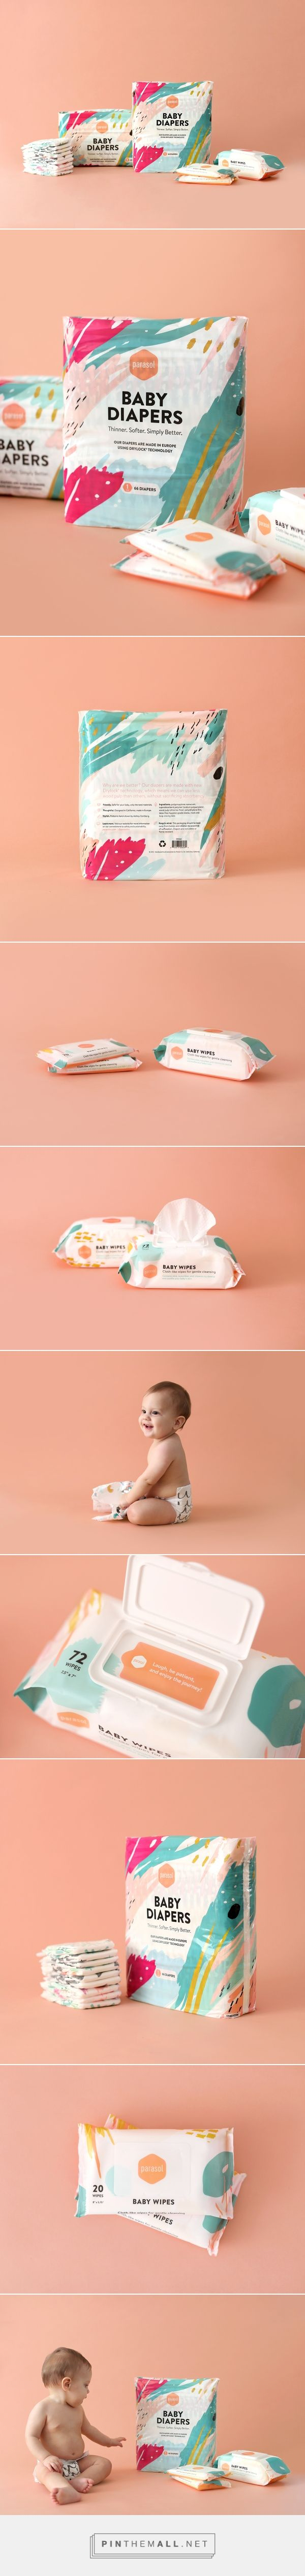 Parasol Co Diaper Subscription Packaging by James Prunean on Behance | Fivestar…